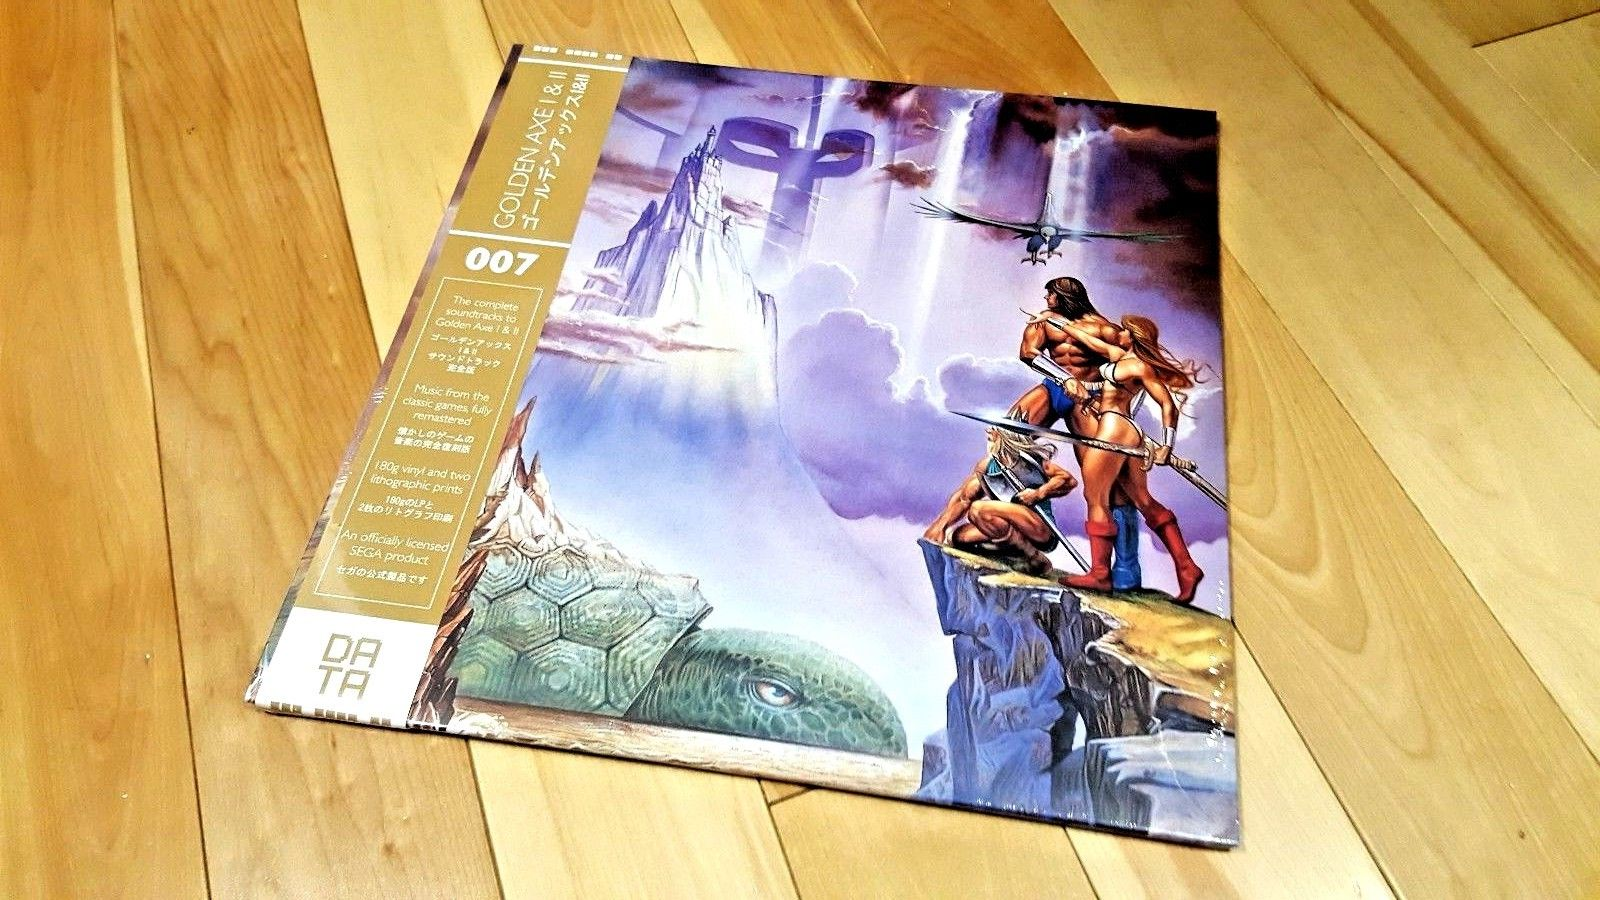 Golden Axe I & II Soundtrack OST Limited Edition Data Discs New LP Data Discs PS